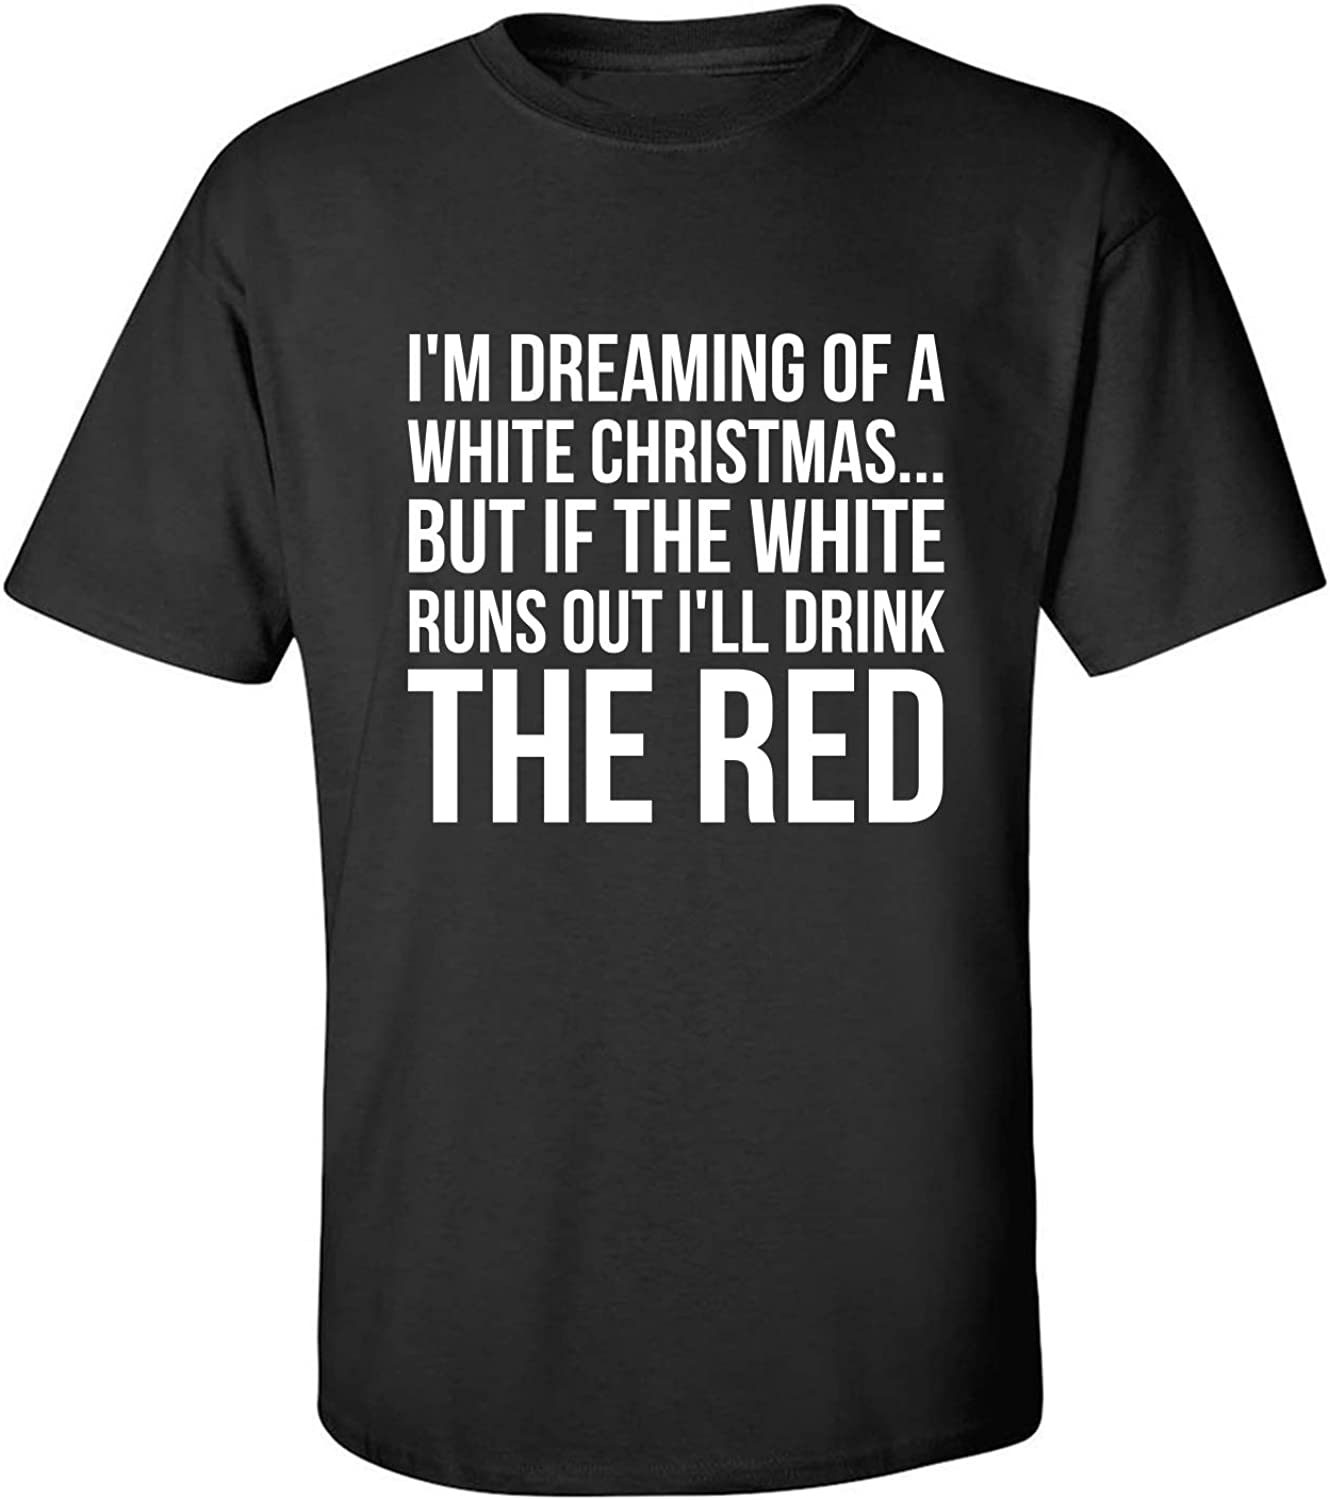 I'm Dreaming of A White Christmas Adult T-Shirt in Black - XXXXX-Large